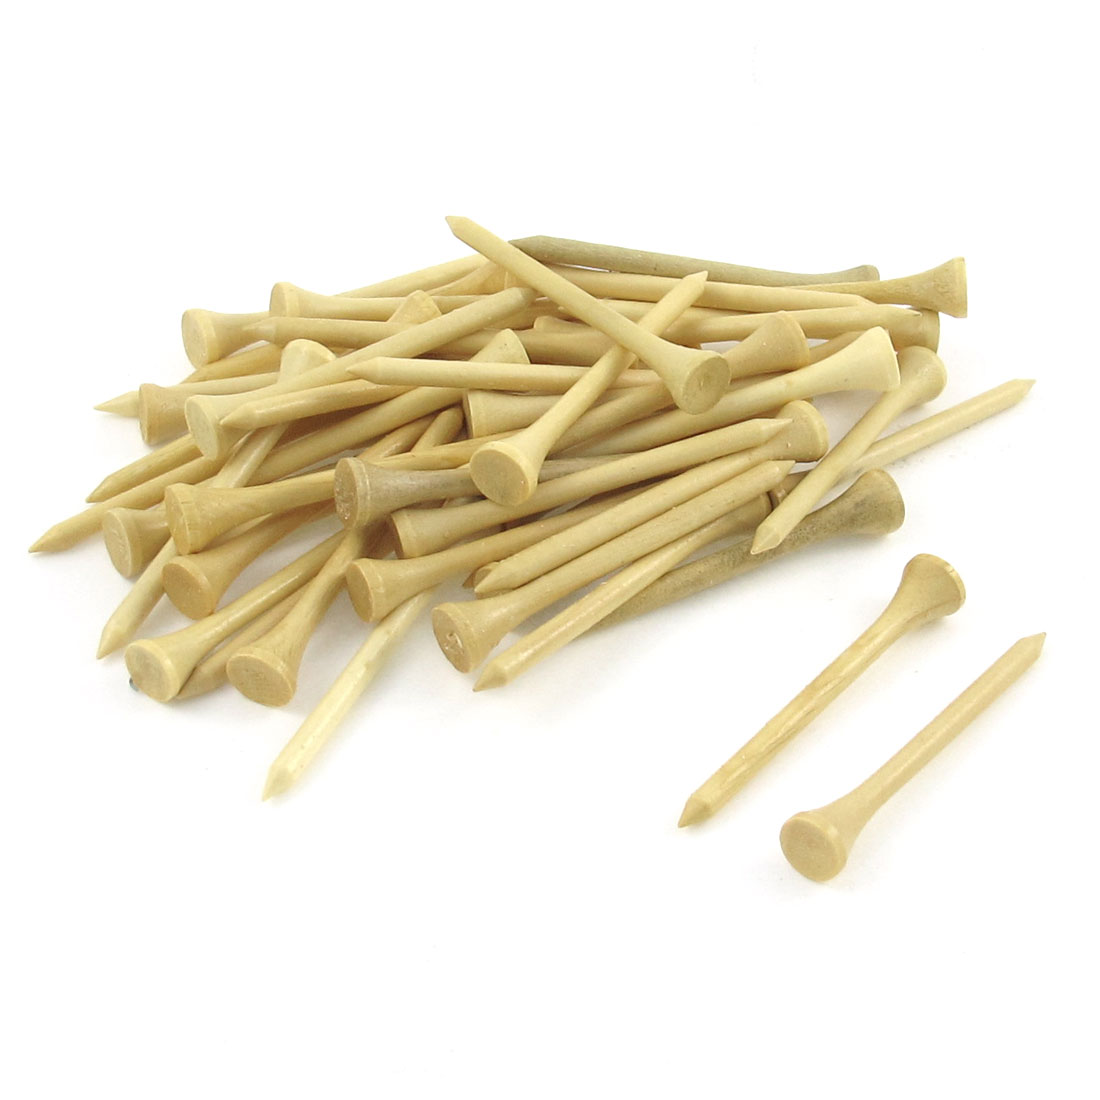 "50 Pcs Wooden Beige Nail Shaped Golf Tee 2.7"" Length"